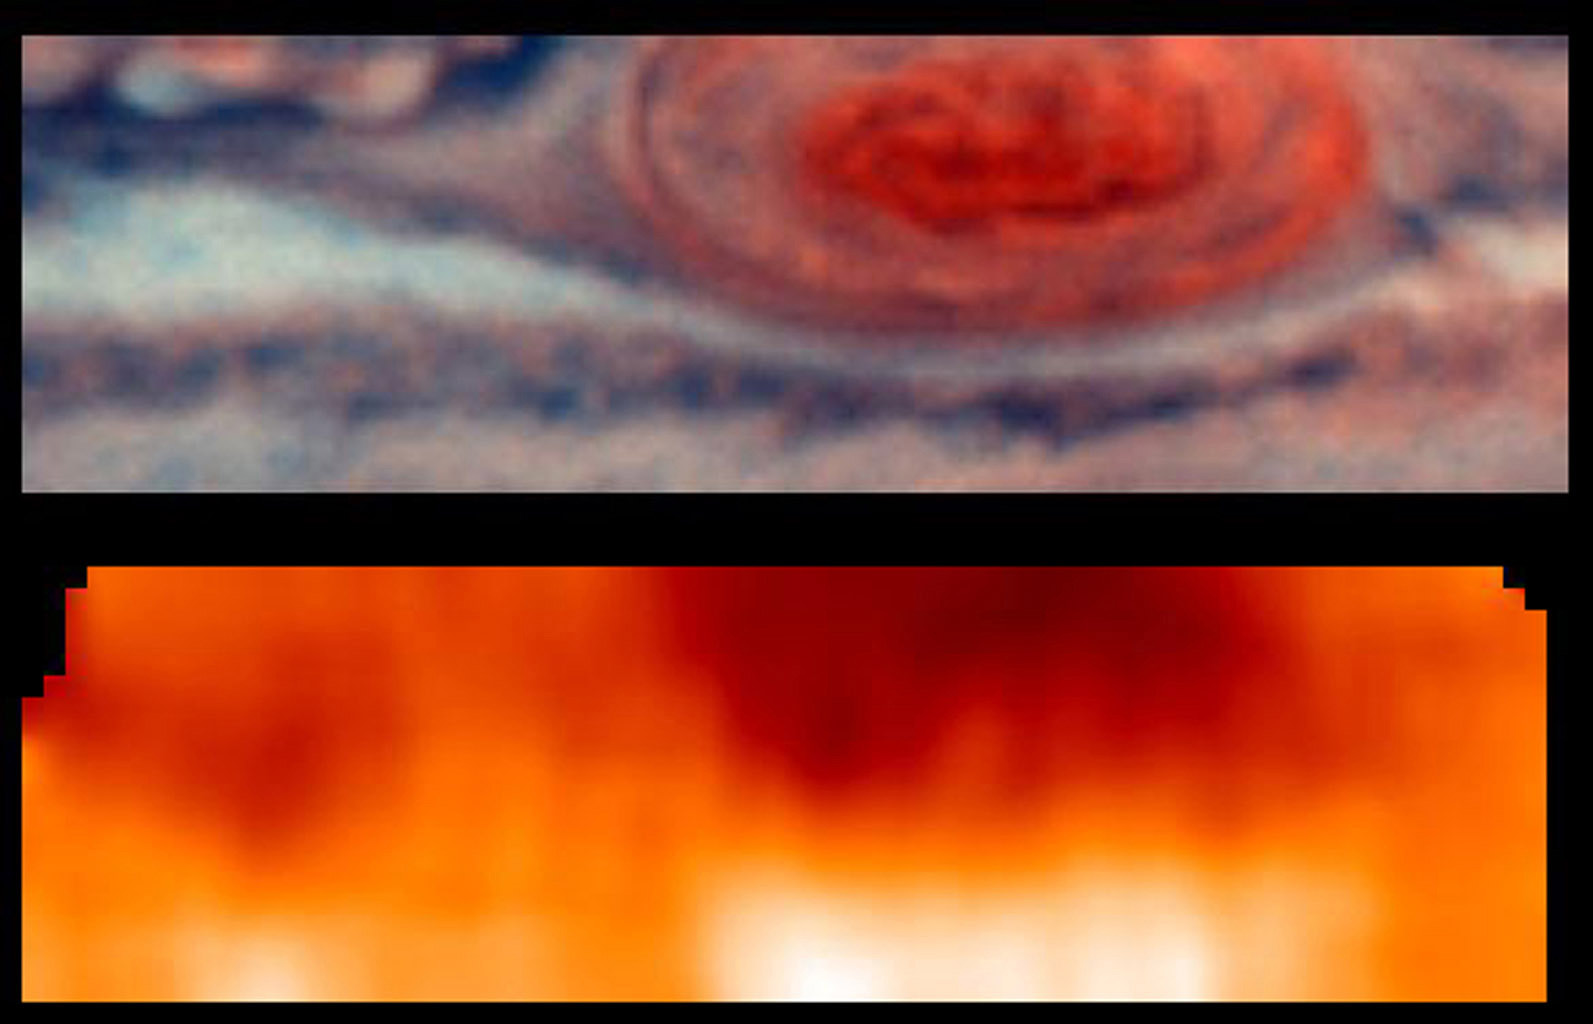 This image, bottom panel, from NASA's Galileo orbiter indicates the forces powering Jovian winds, and differentiates between areas of strongest upwelling and downwelling winds in the upper part of the atmosphere where winds are strong.